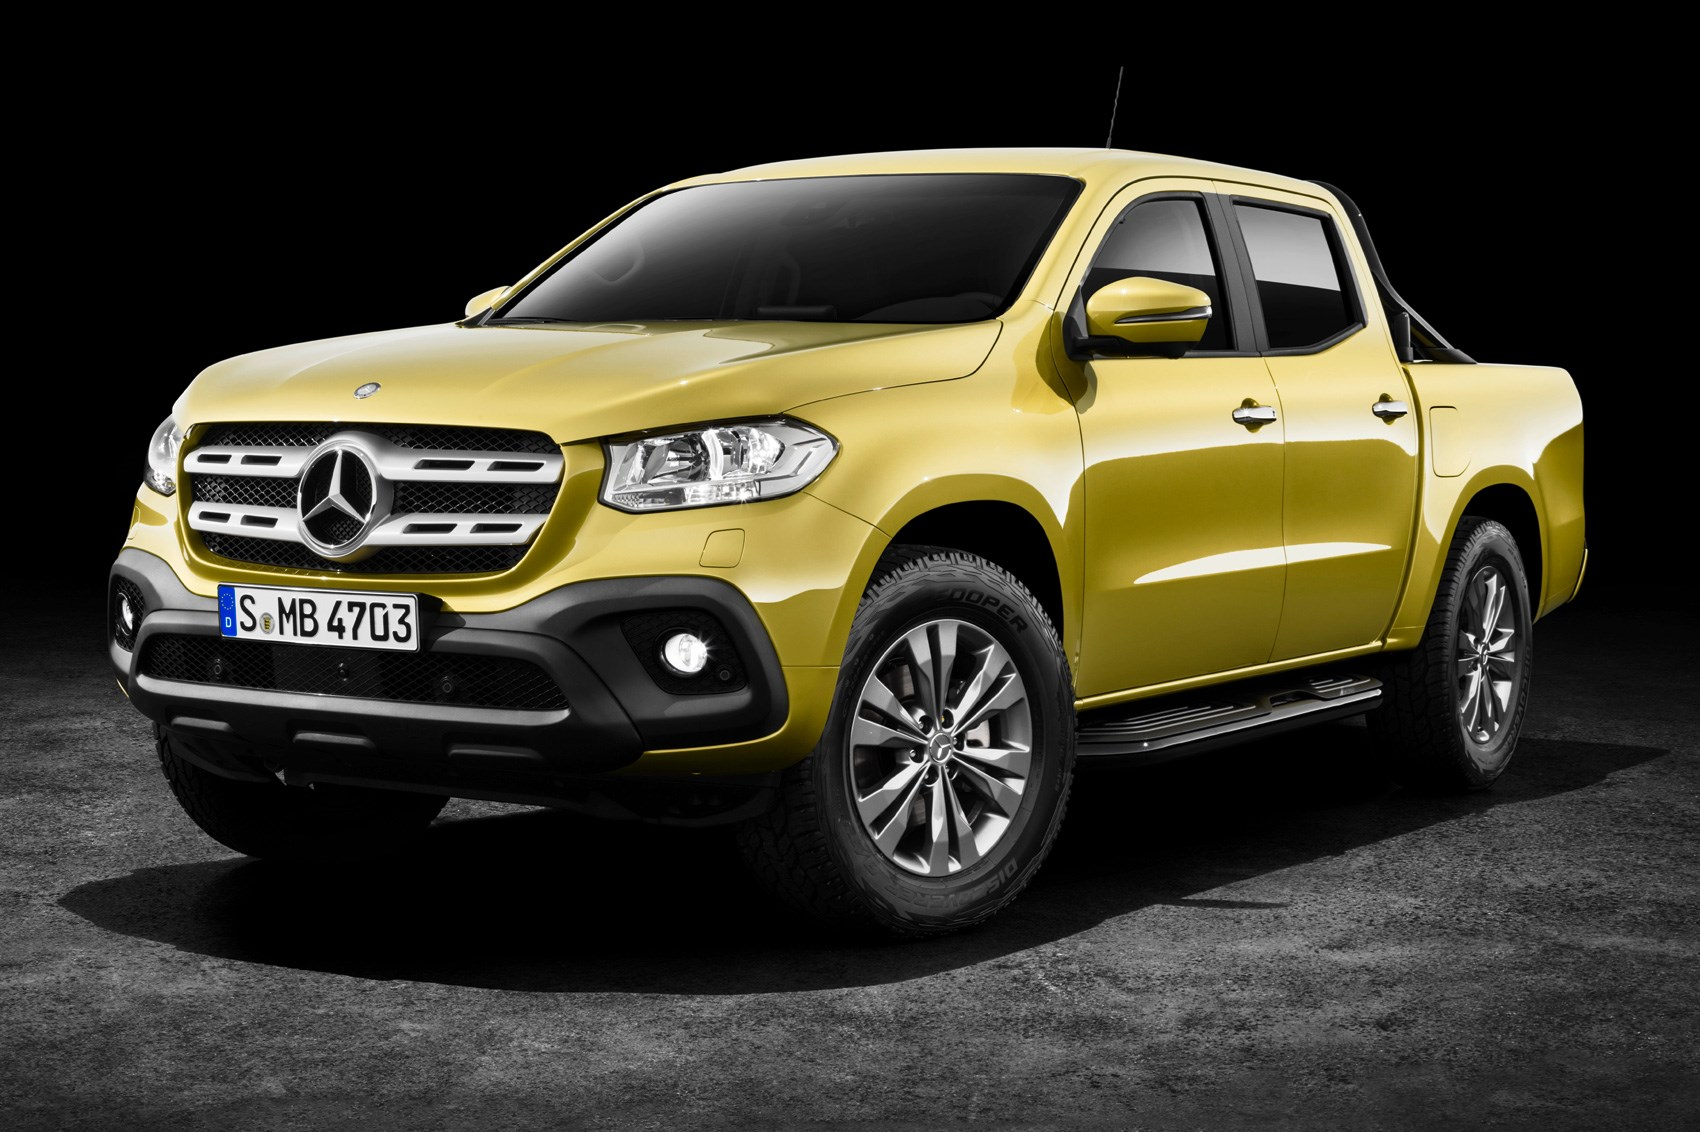 ... A posher pick-up: Mercedes X-class gains V6 power